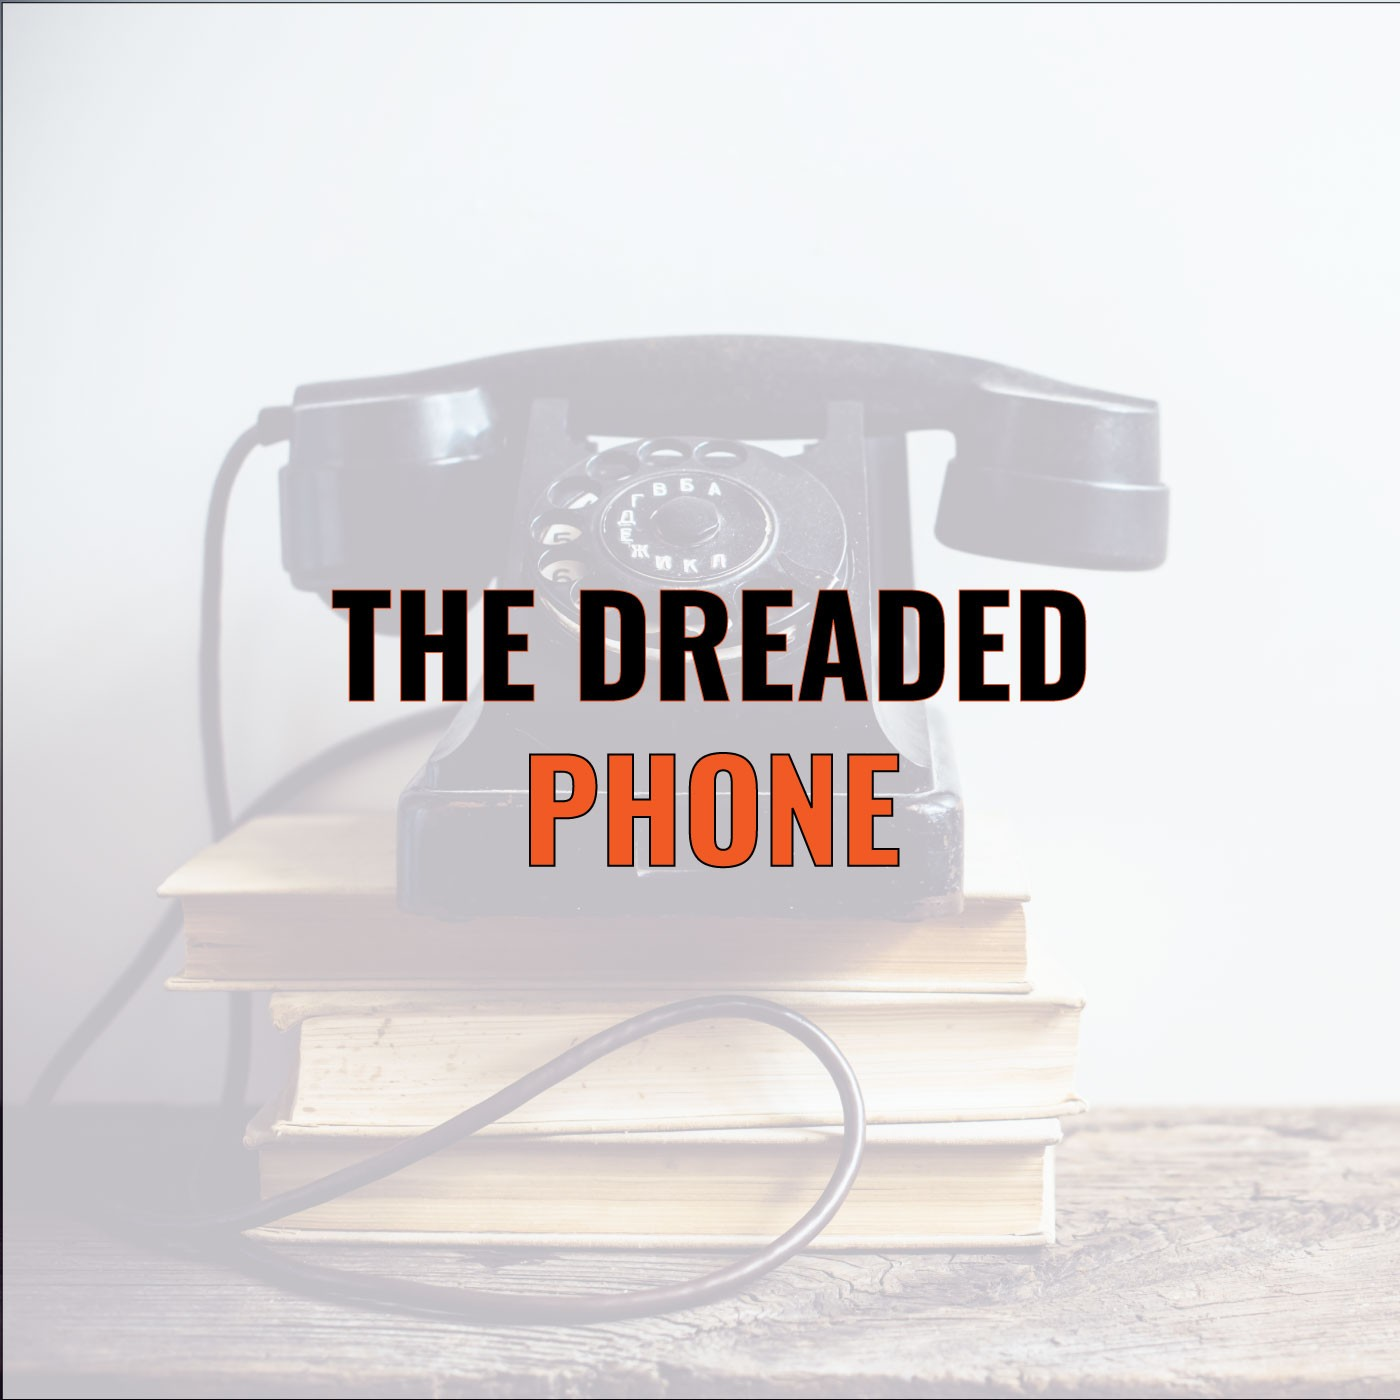 Dale Dupree on The Dreaded Phone